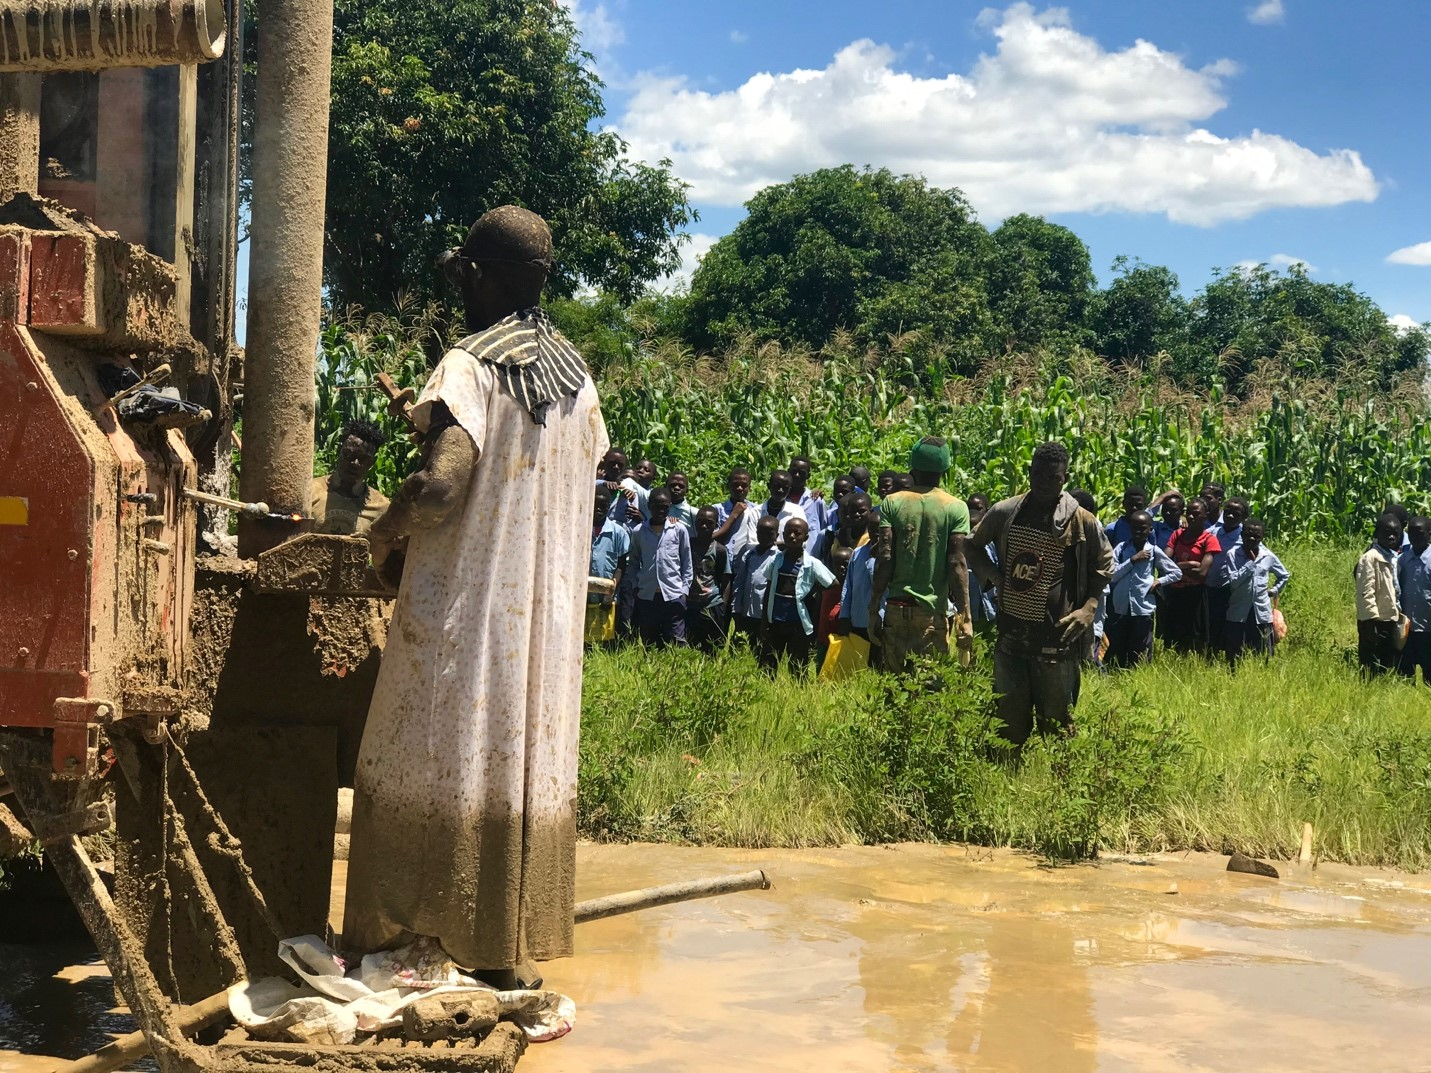 When school was out, all the Phalaza community kids came to watch the drilling of the new borehole.